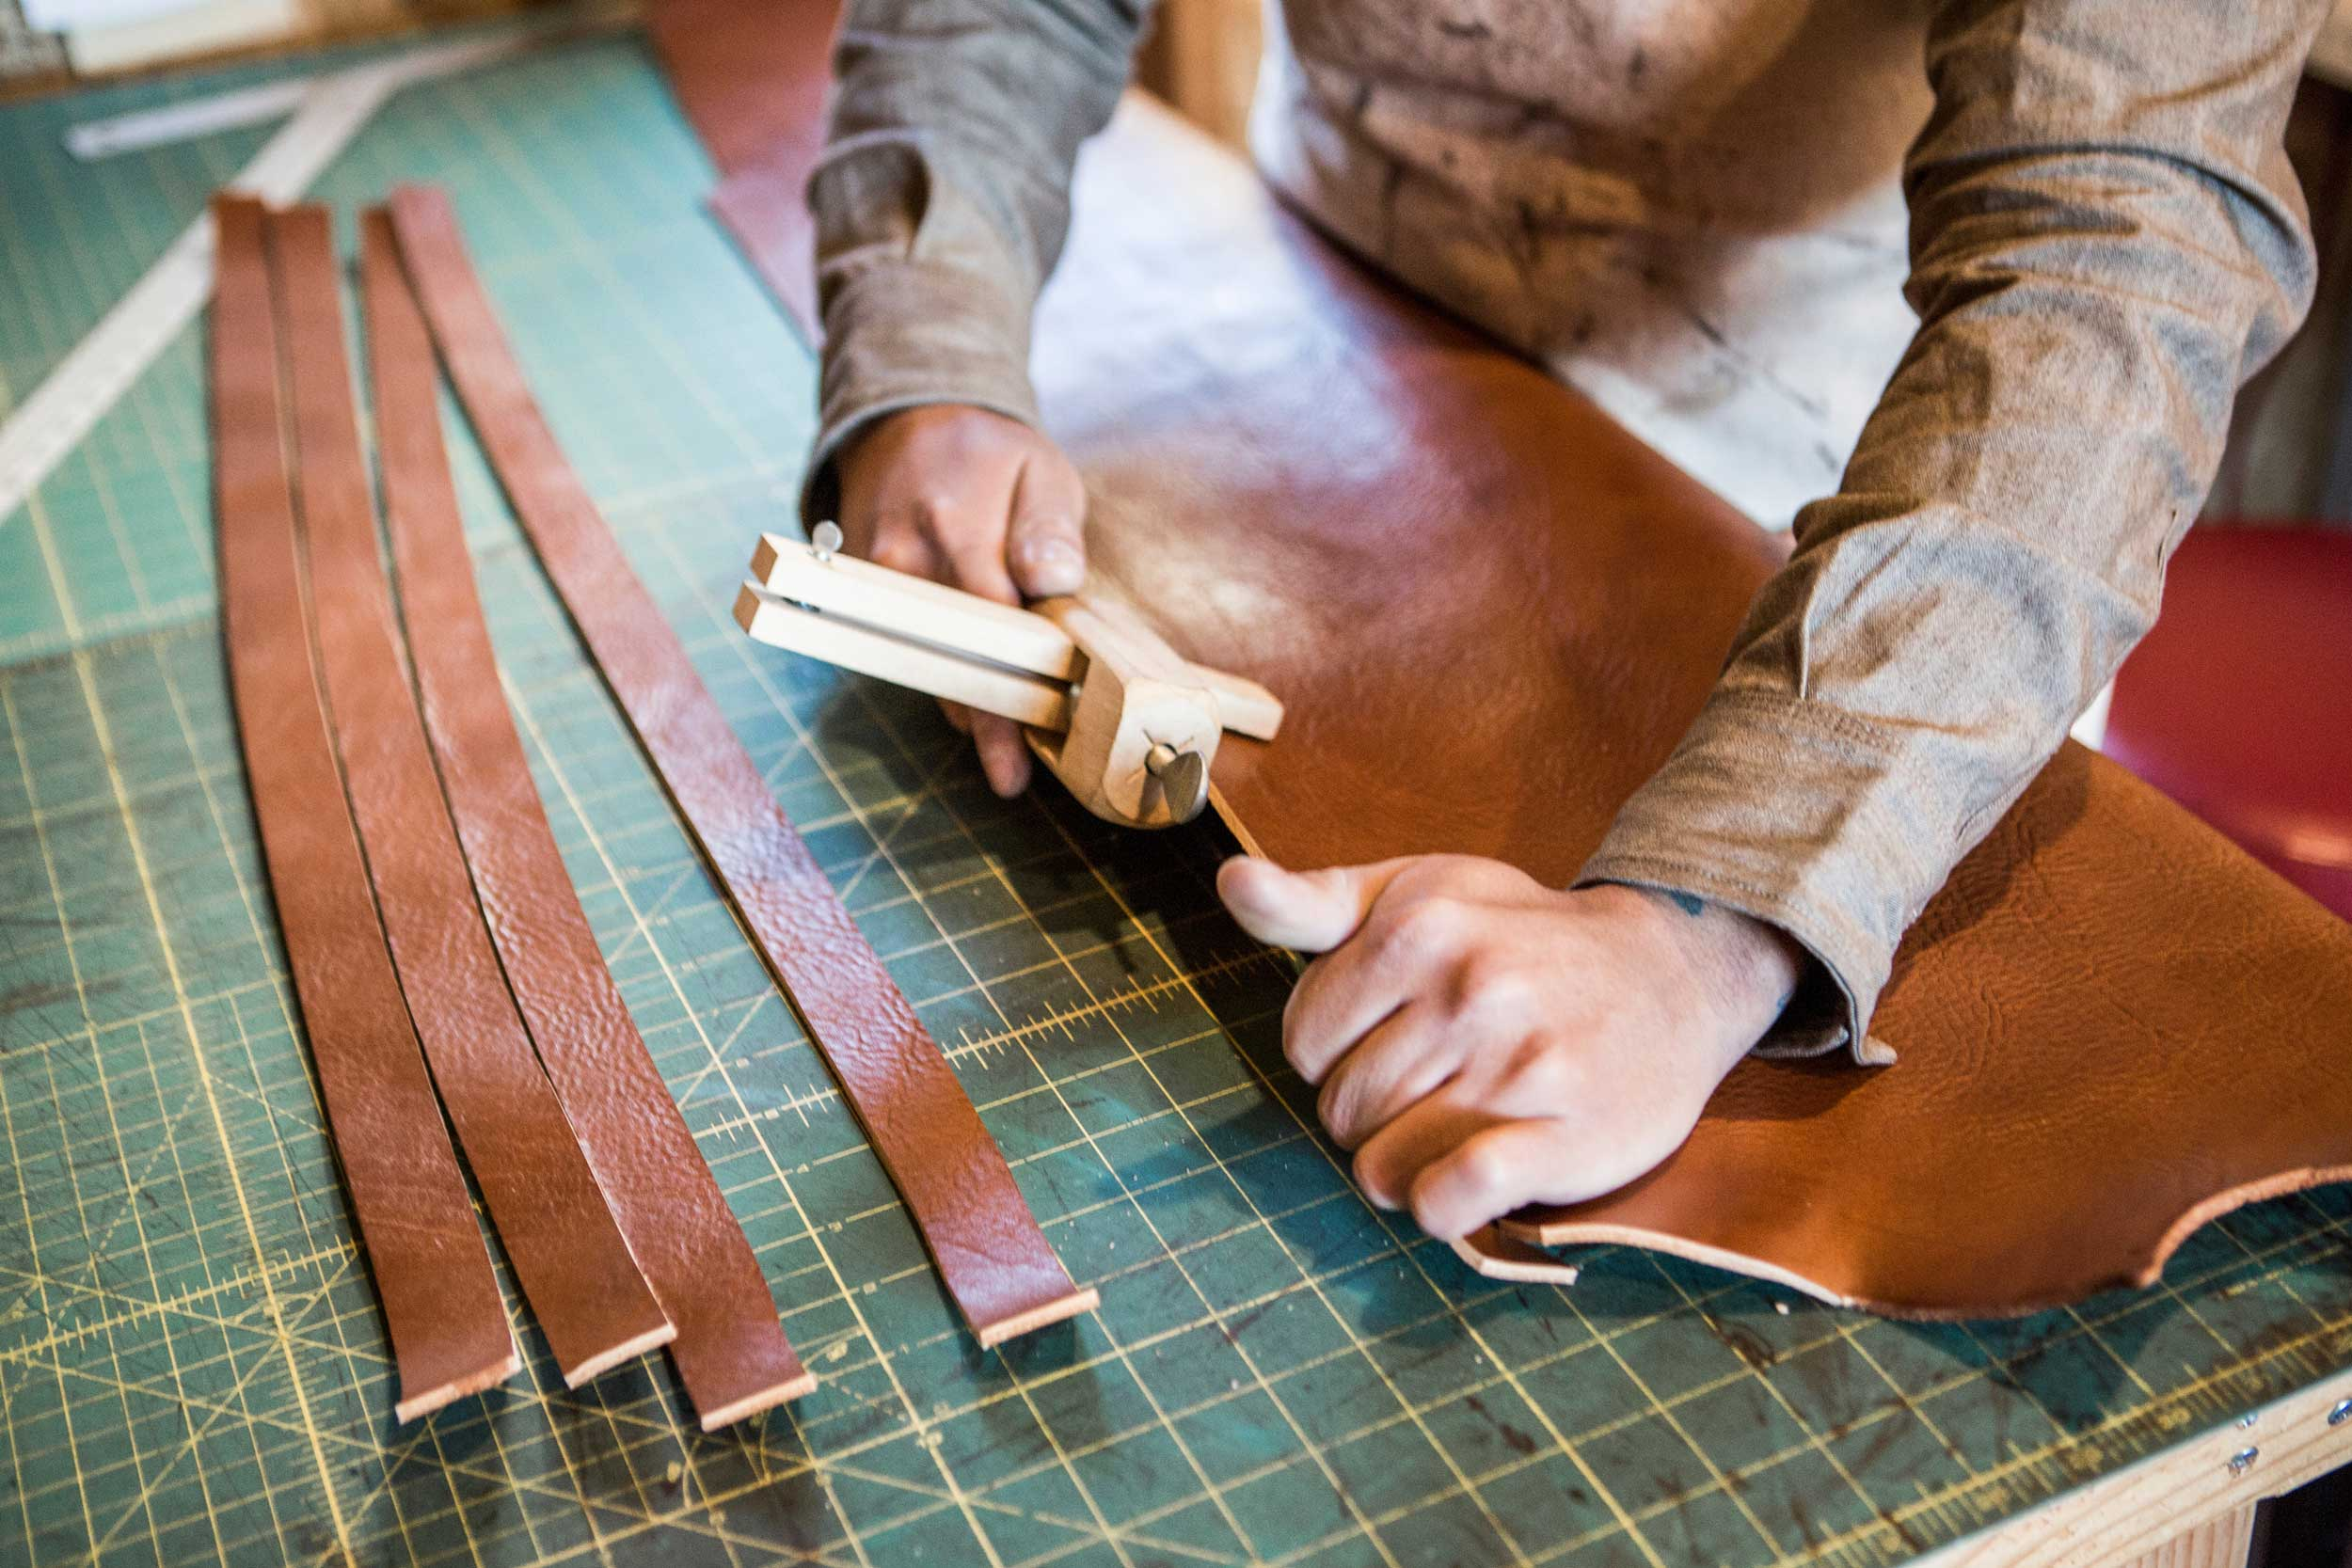 Strong hands working with tough, beautiful leather.